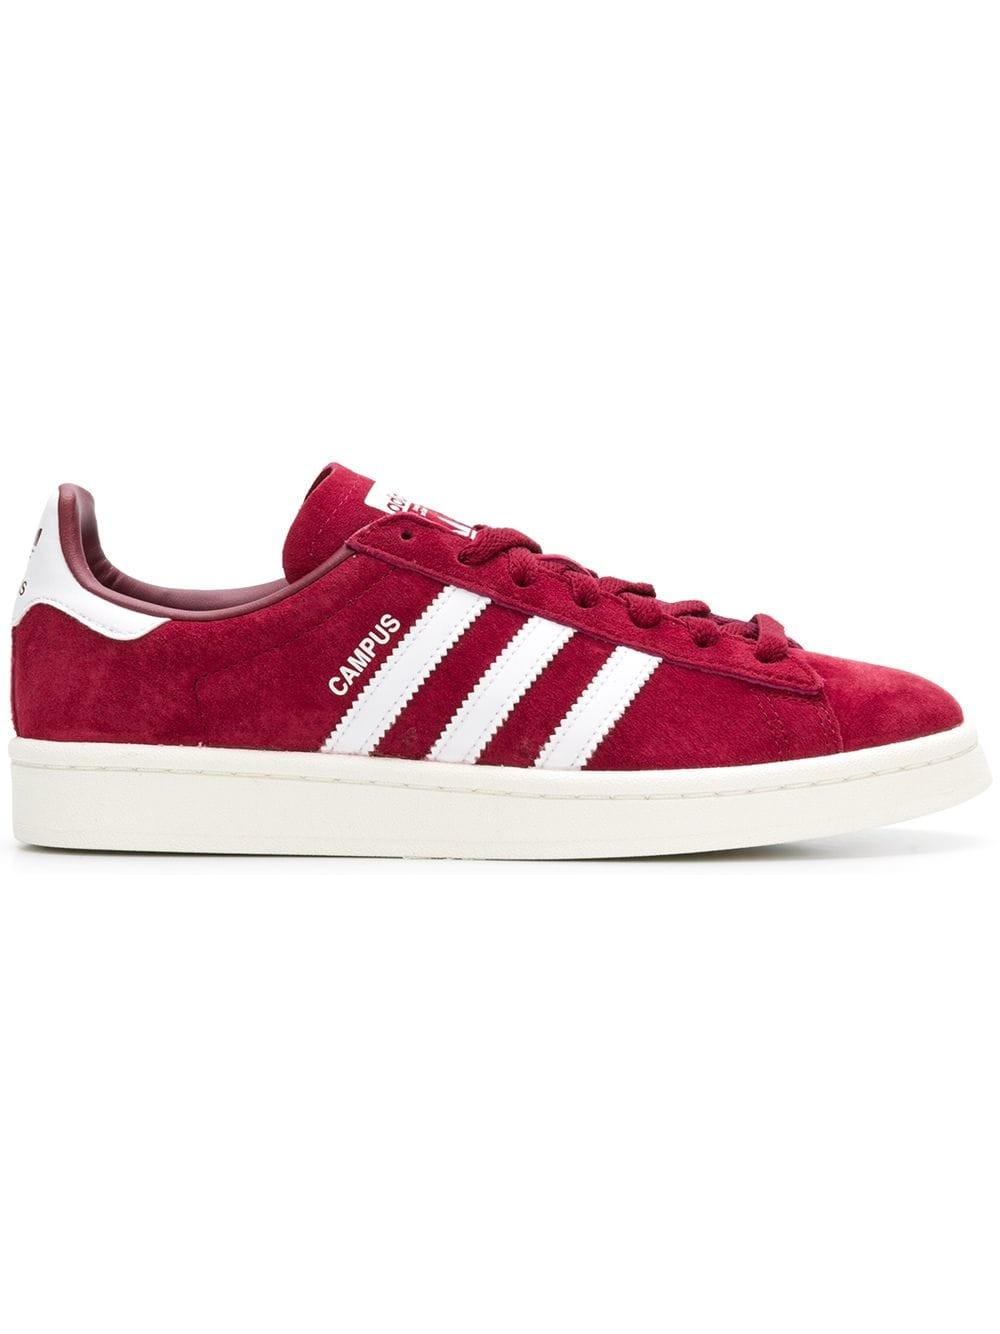 Adidas Originals CAMPUS Rouge/Blanche BZ0087